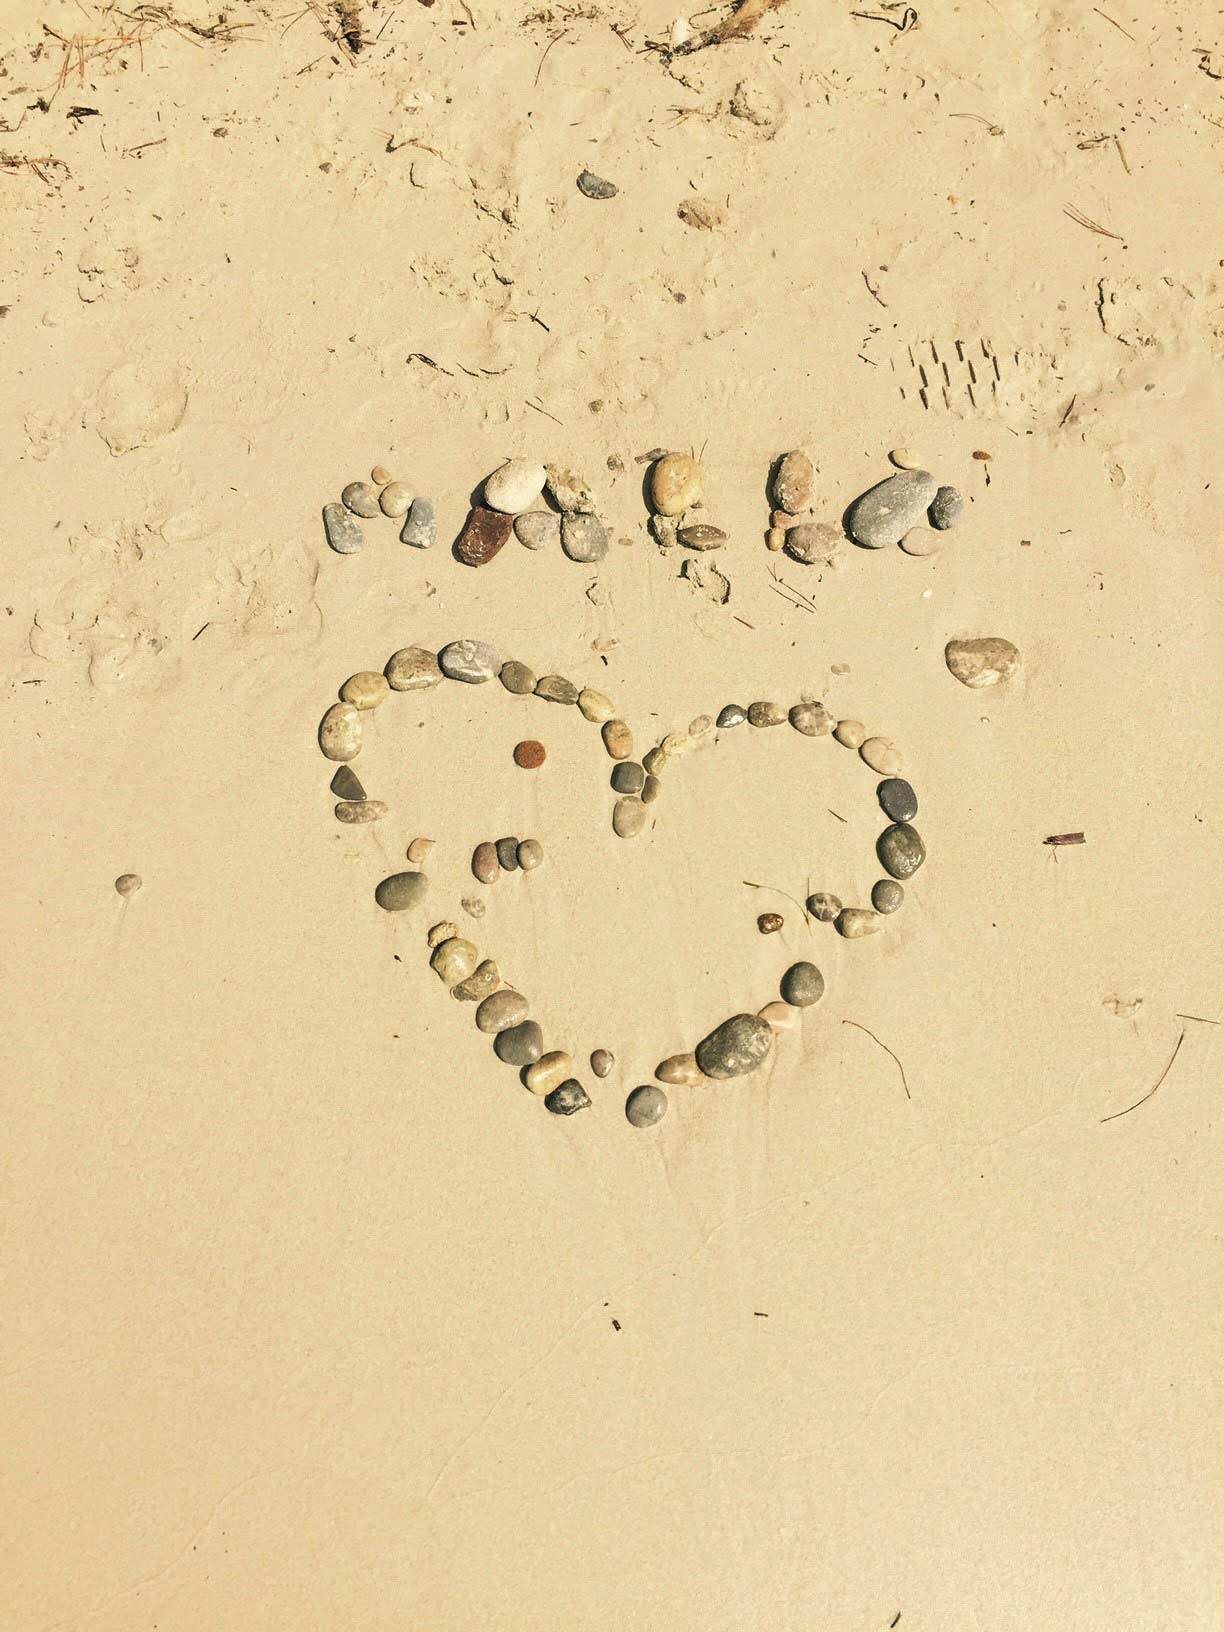 """Malla"", followed by a heart, is written in rocks on the sand at a beach"